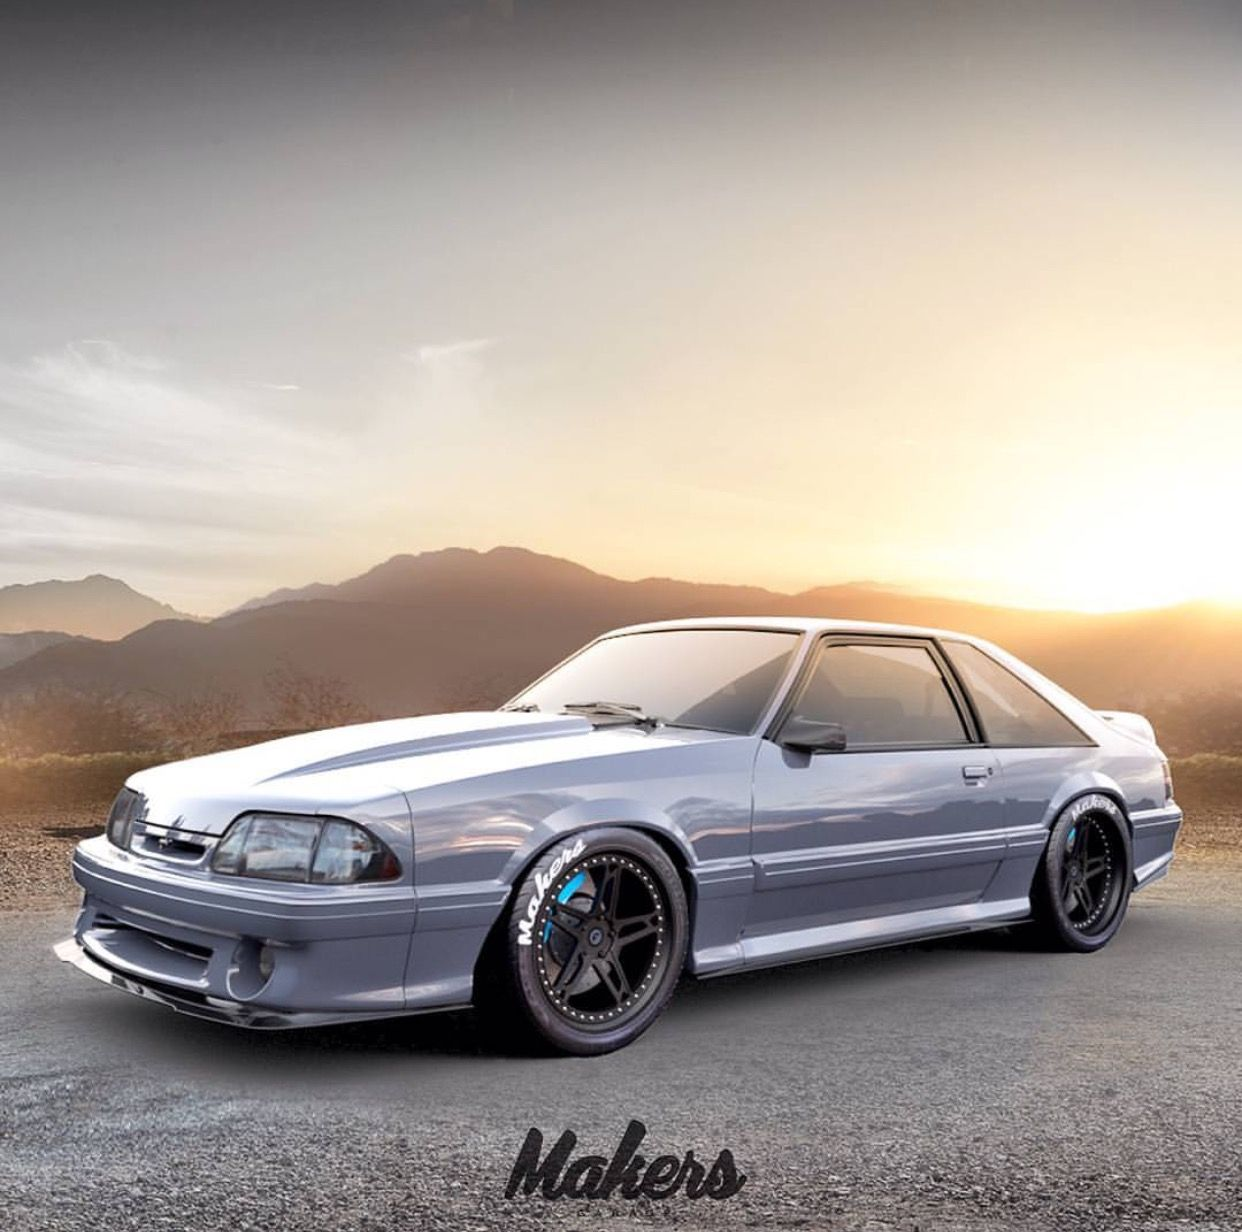 foxbody ford mustang 93 mustang fox body mustang. Black Bedroom Furniture Sets. Home Design Ideas